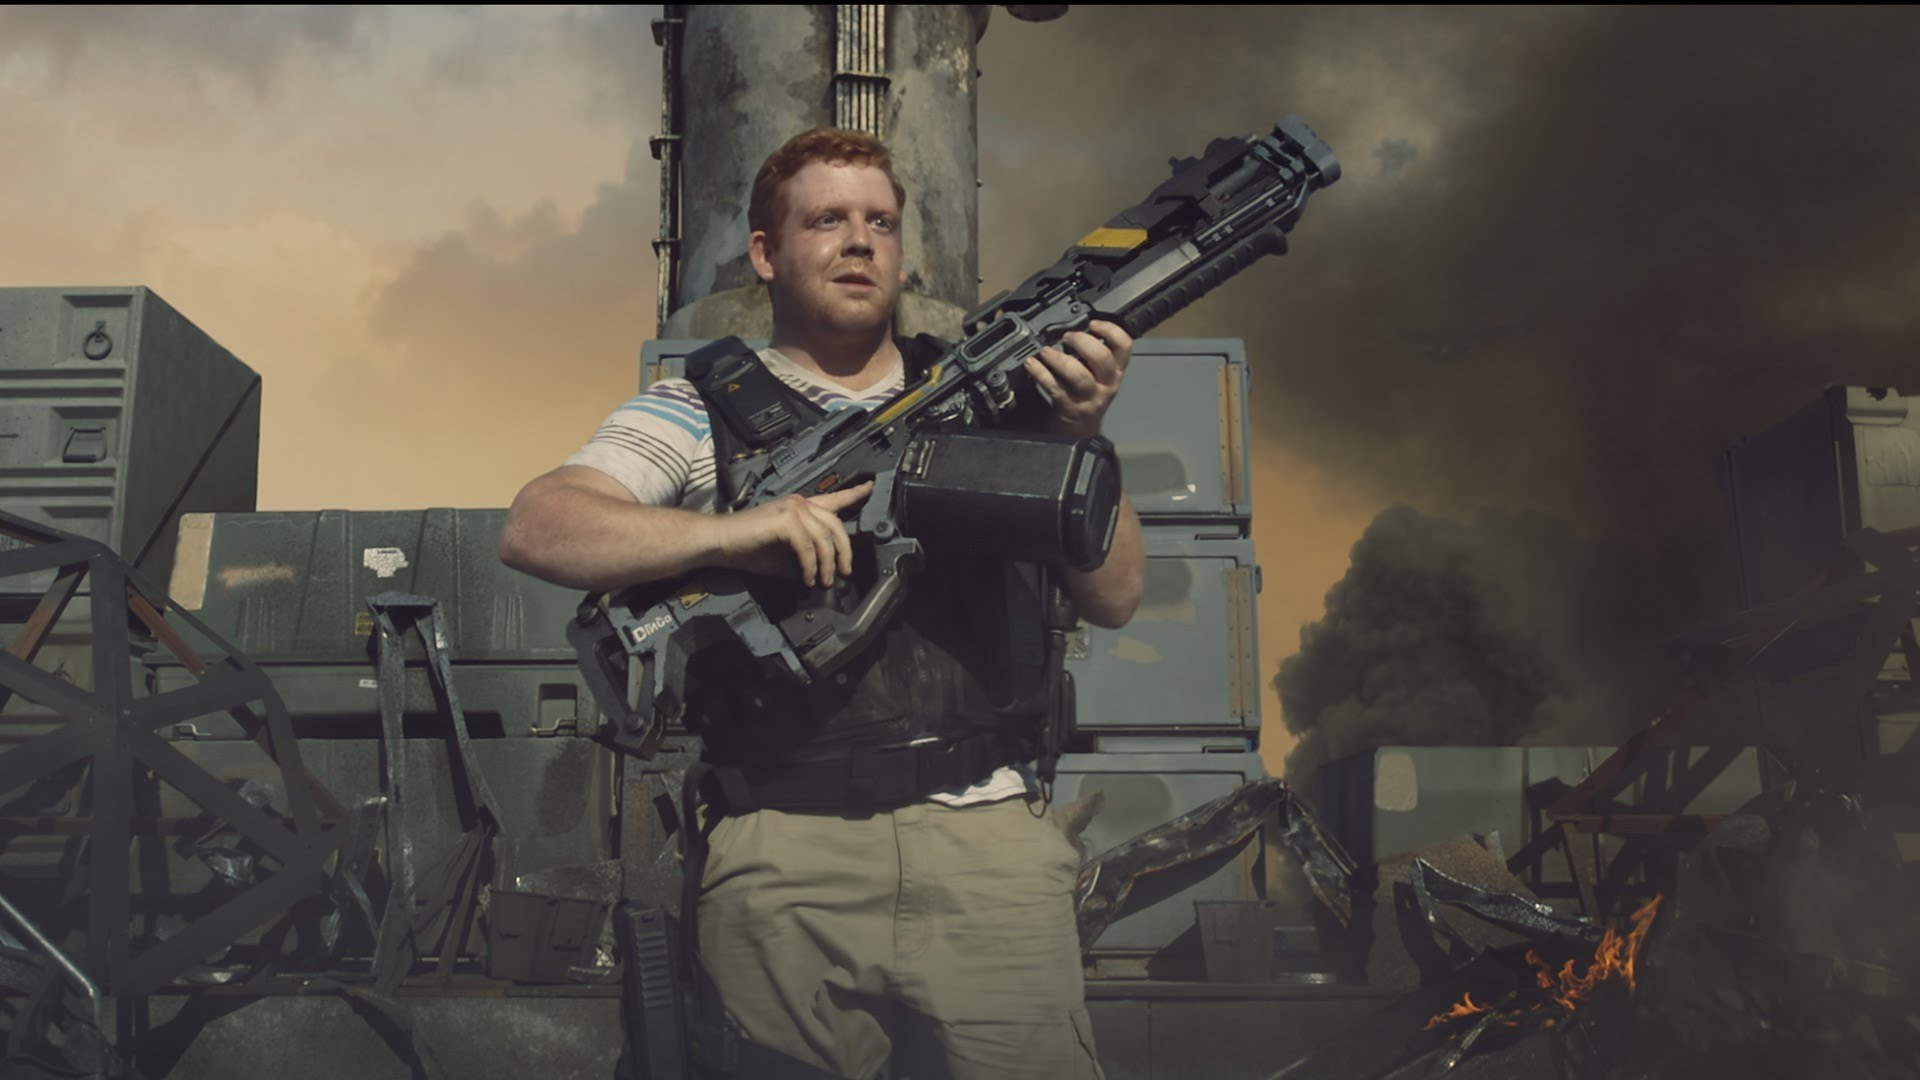 Marshawn Lynch makes cameo appearance in new Call of Duty commercial